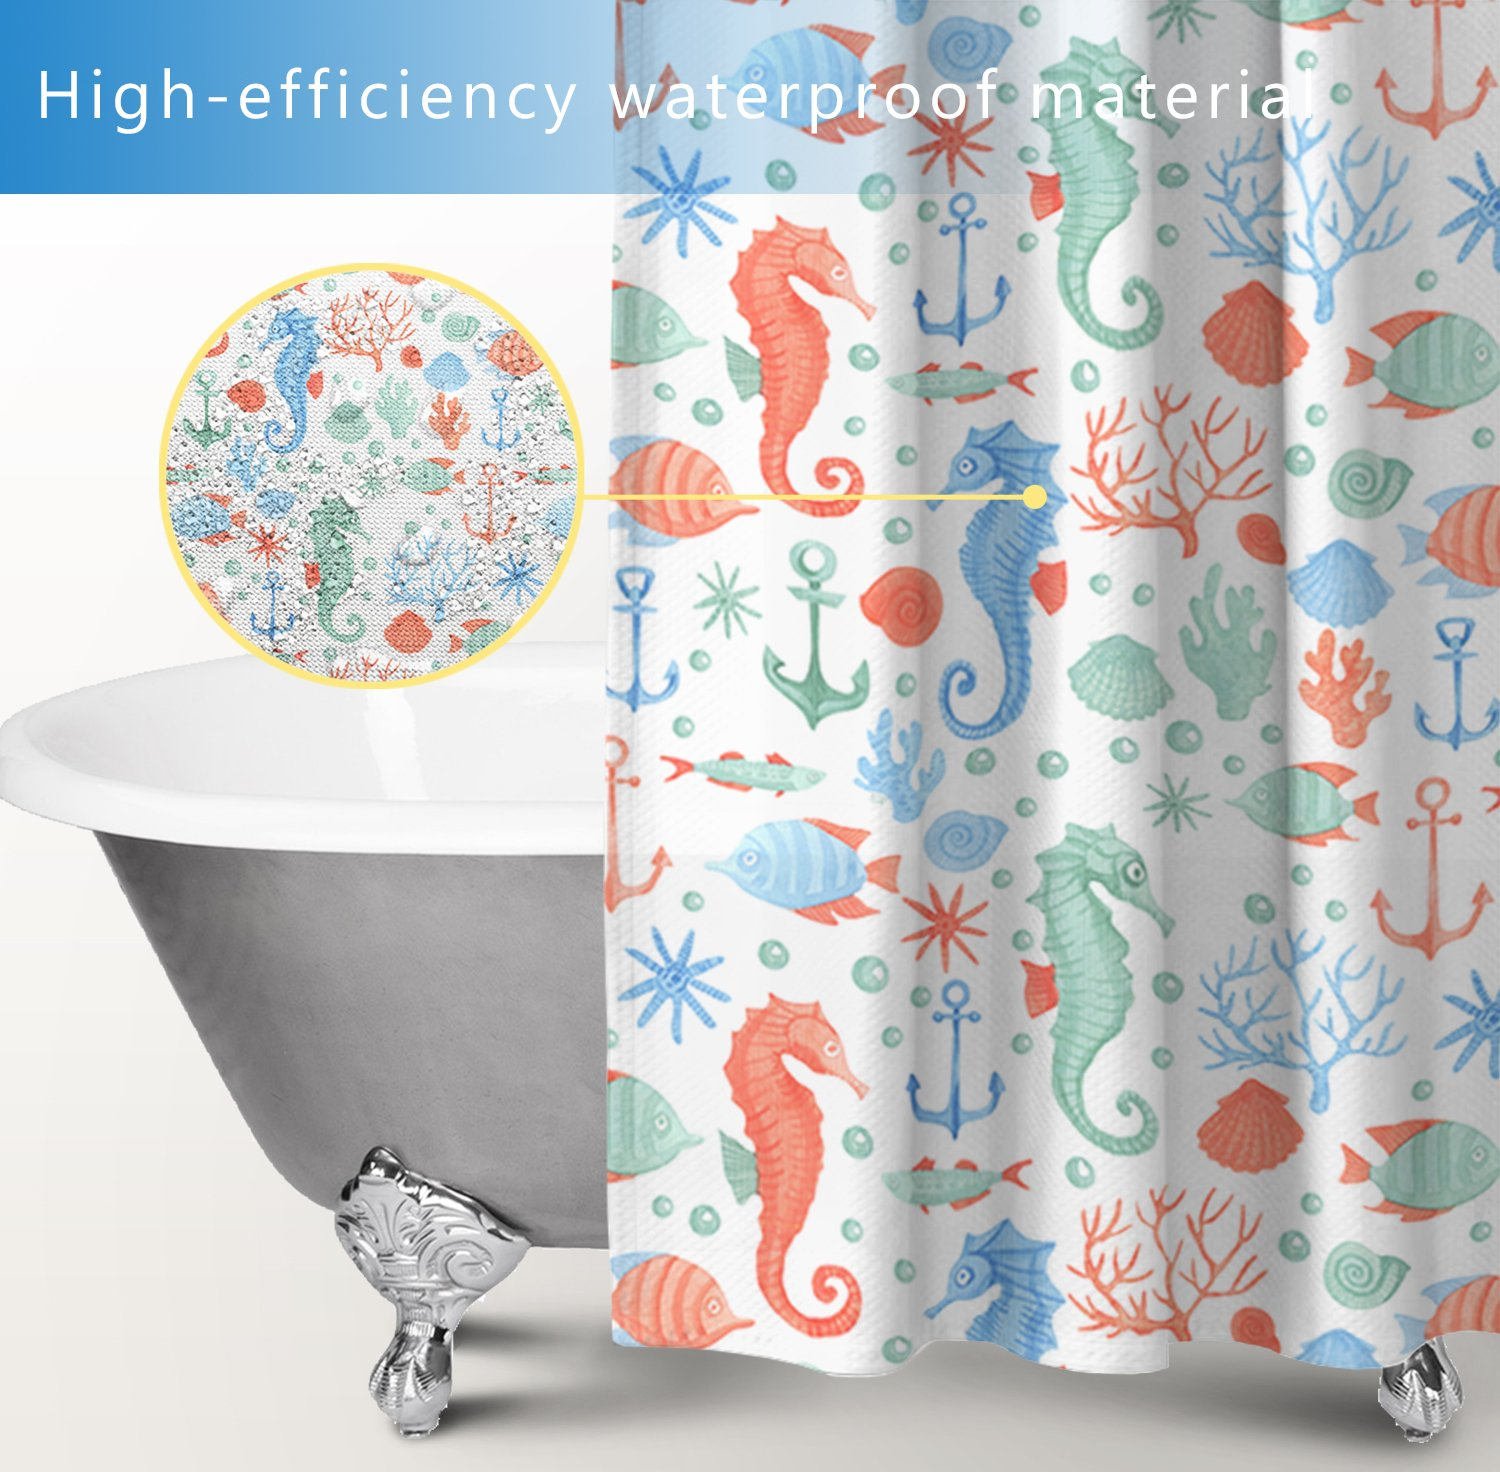 Fabric Stall Shower Curtain 36 x 72 Inch for Bathroom Set,Turtle ...